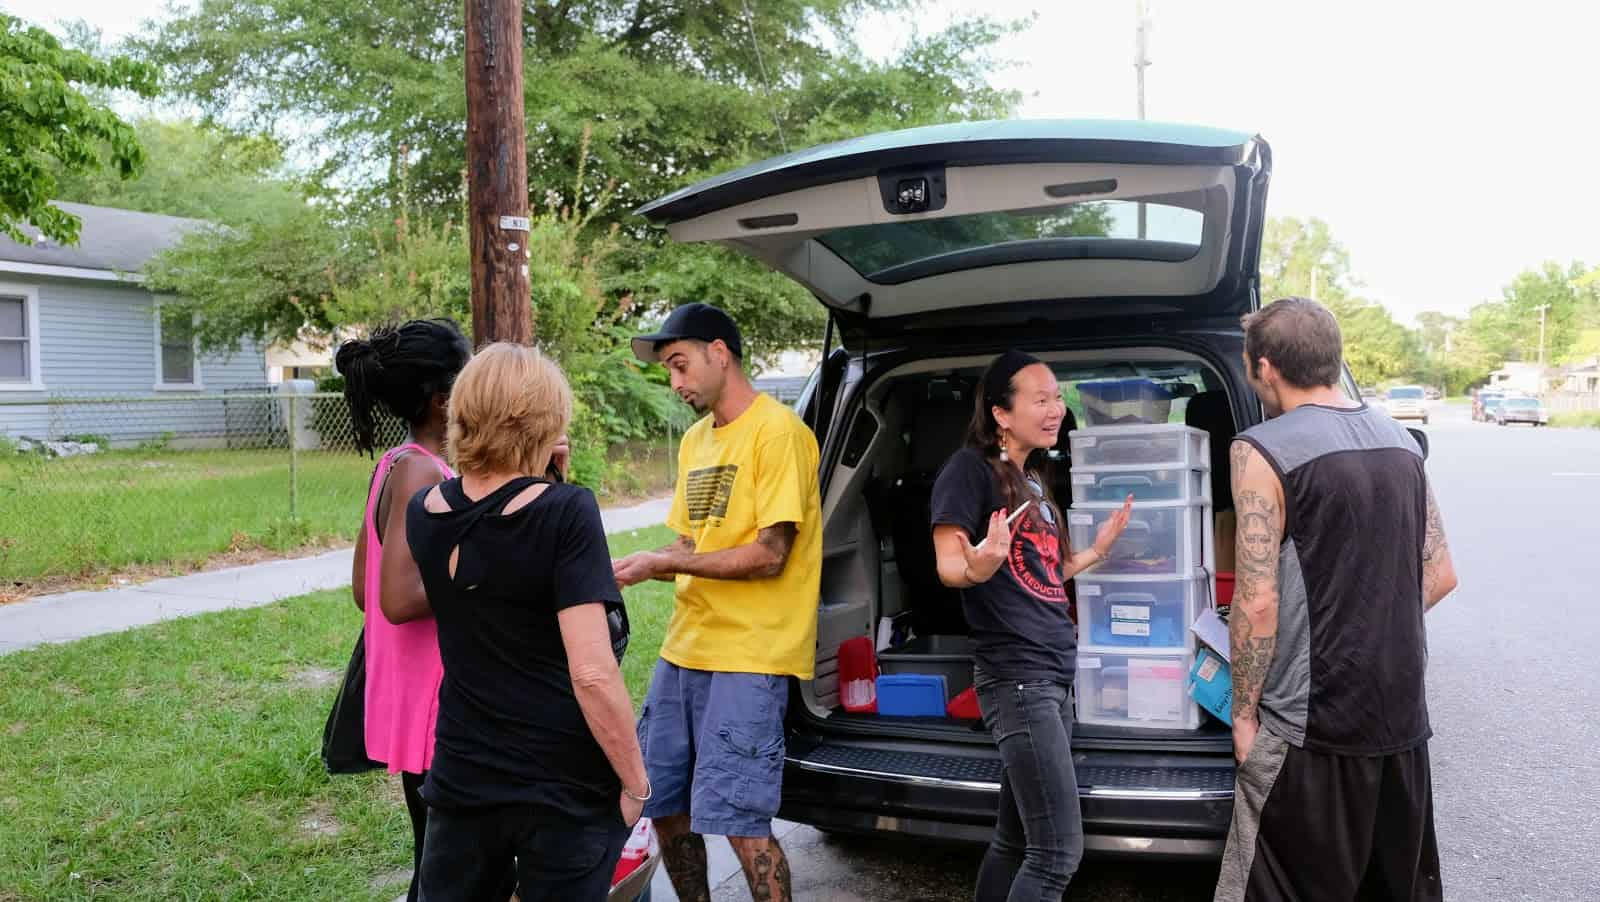 Mobile Syringe Exchange Serves People Where They Are - North